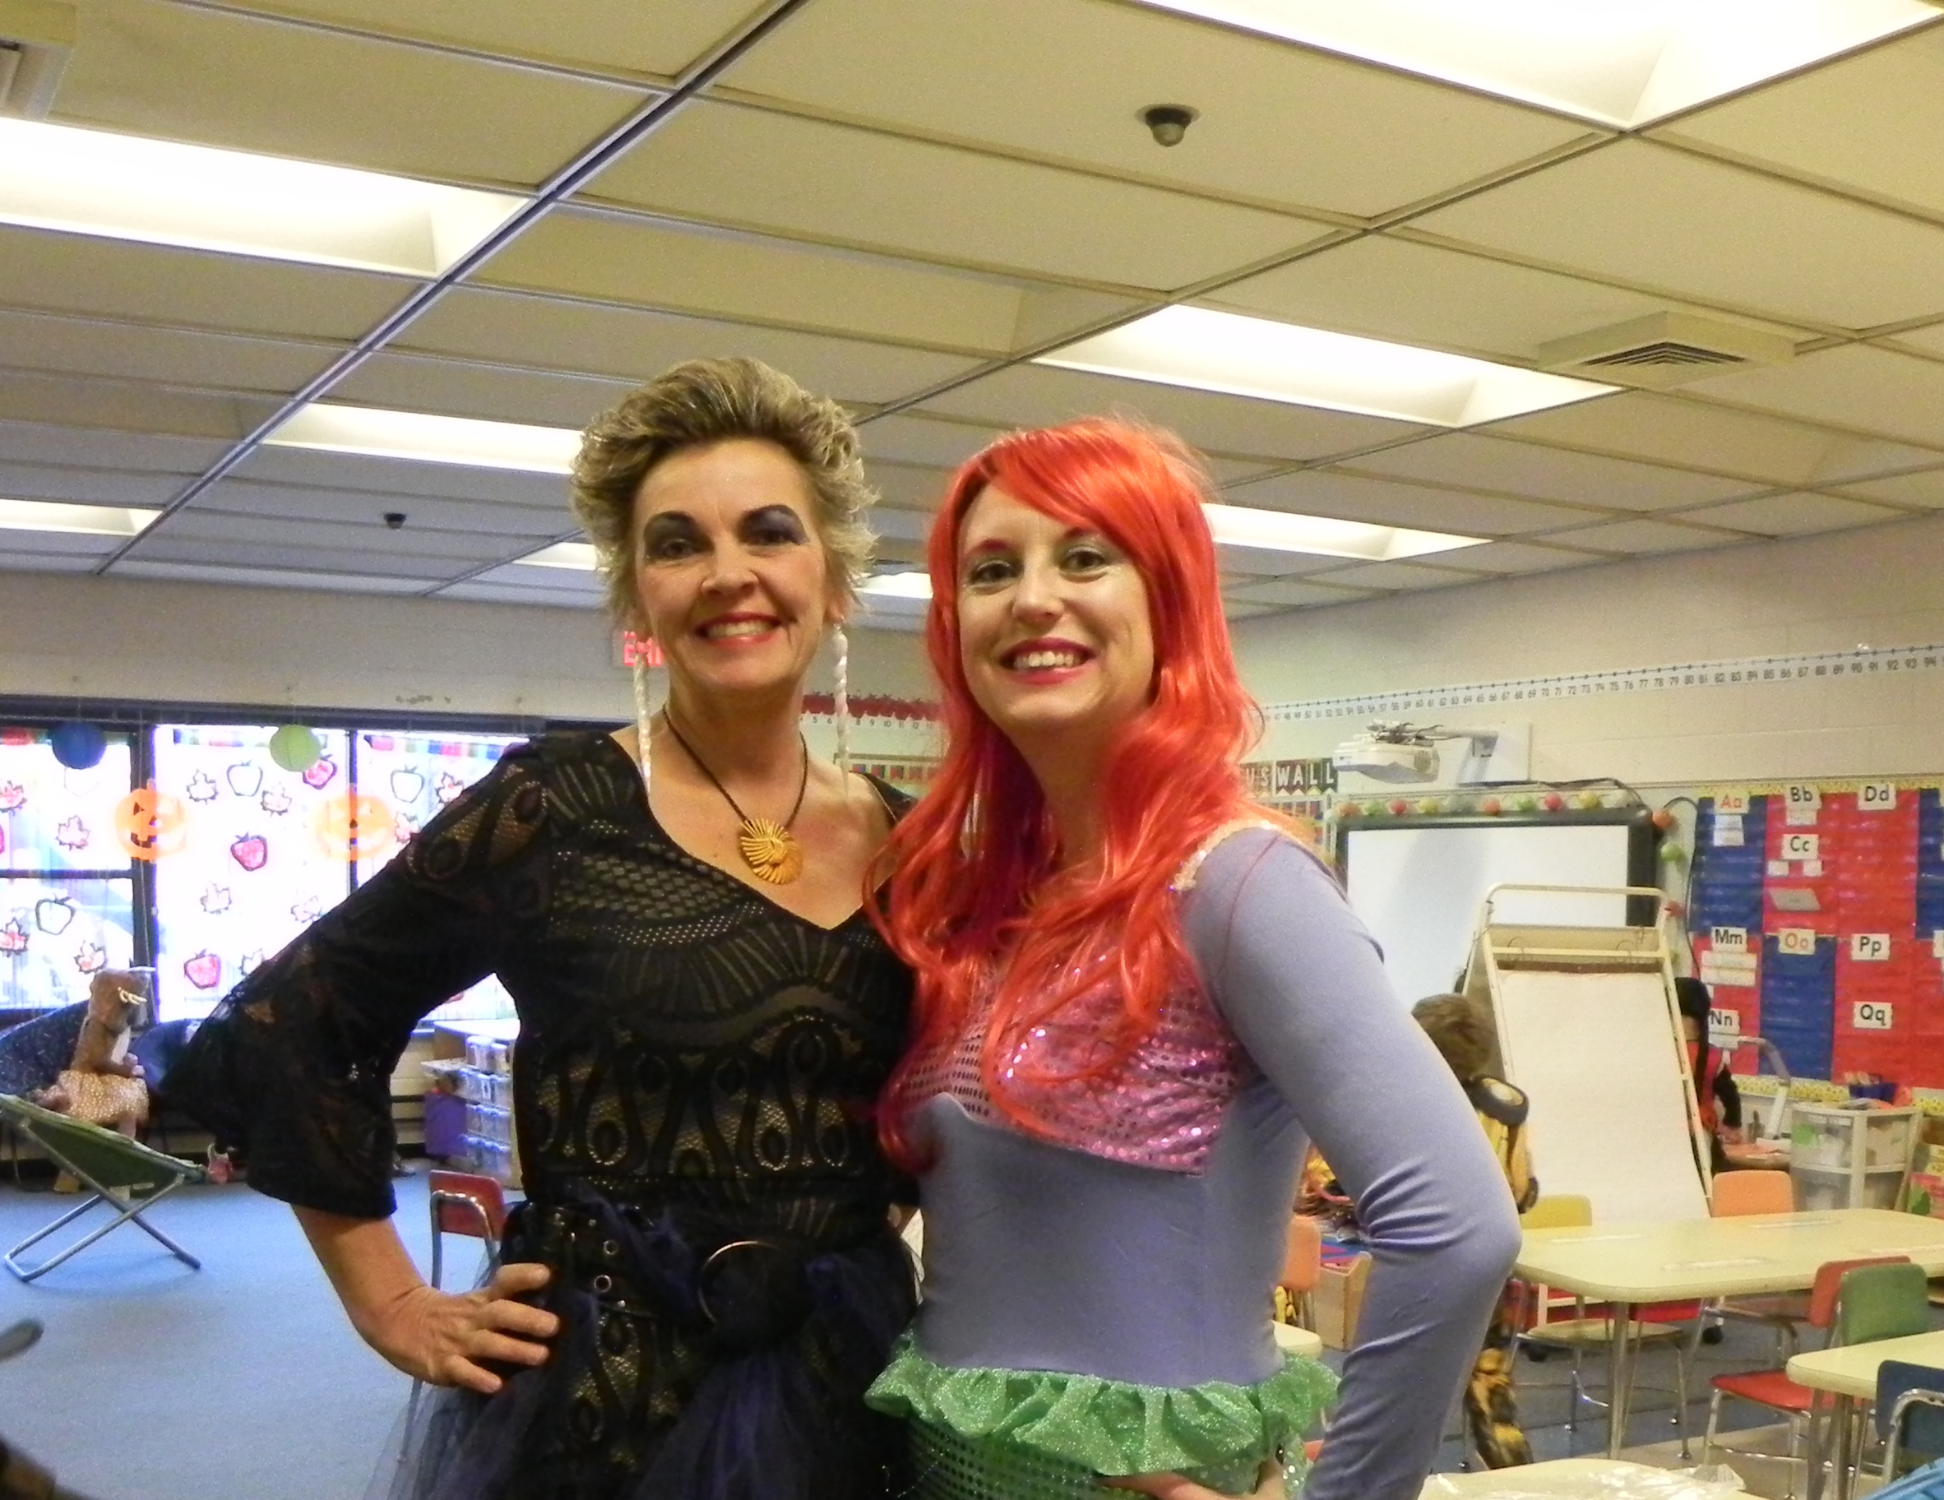 Little Mermaid and Ursula